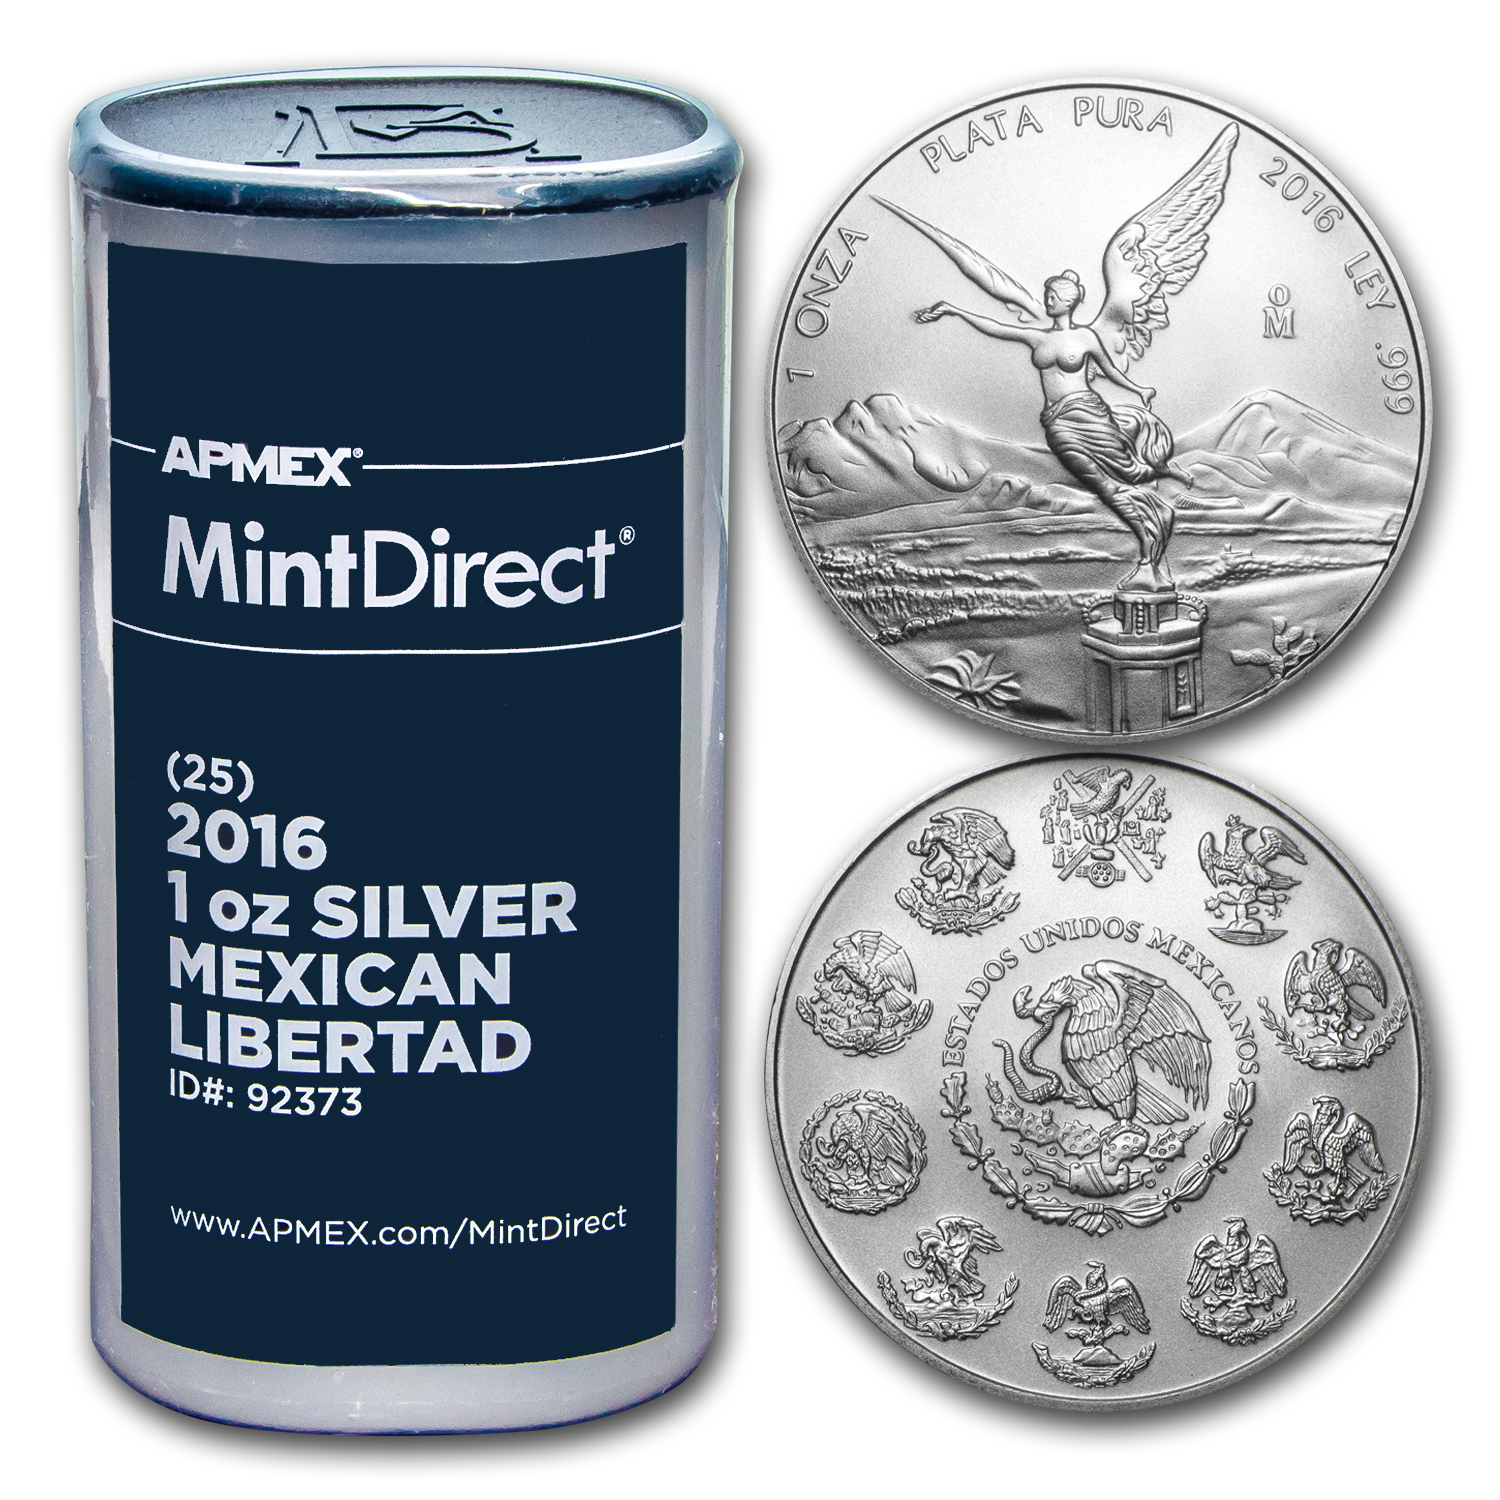 2016 Mexico 1 oz Silver Libertad (25-Coin MintDirect® Tube)